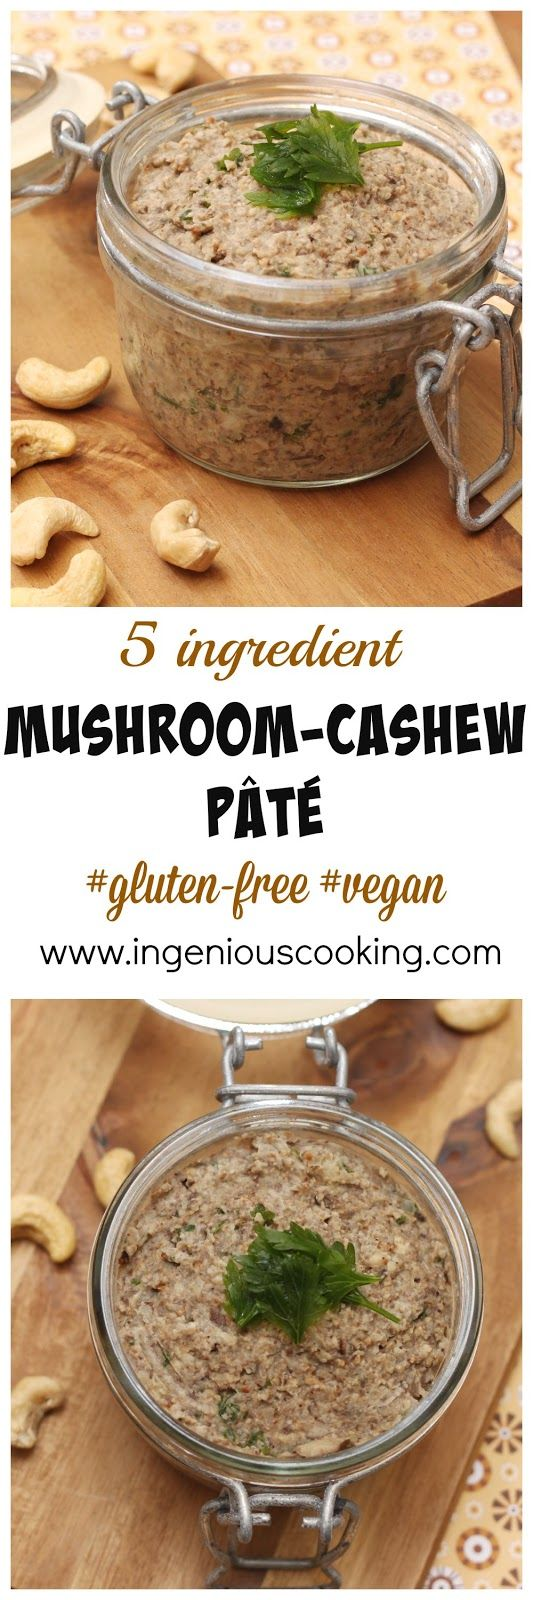 Mushroom-cashew pâté - simple vegan spread made with only 5 ingredients in under 20 minutes! Goes perferctly with toasts or wraps. So earthy and nourishing!